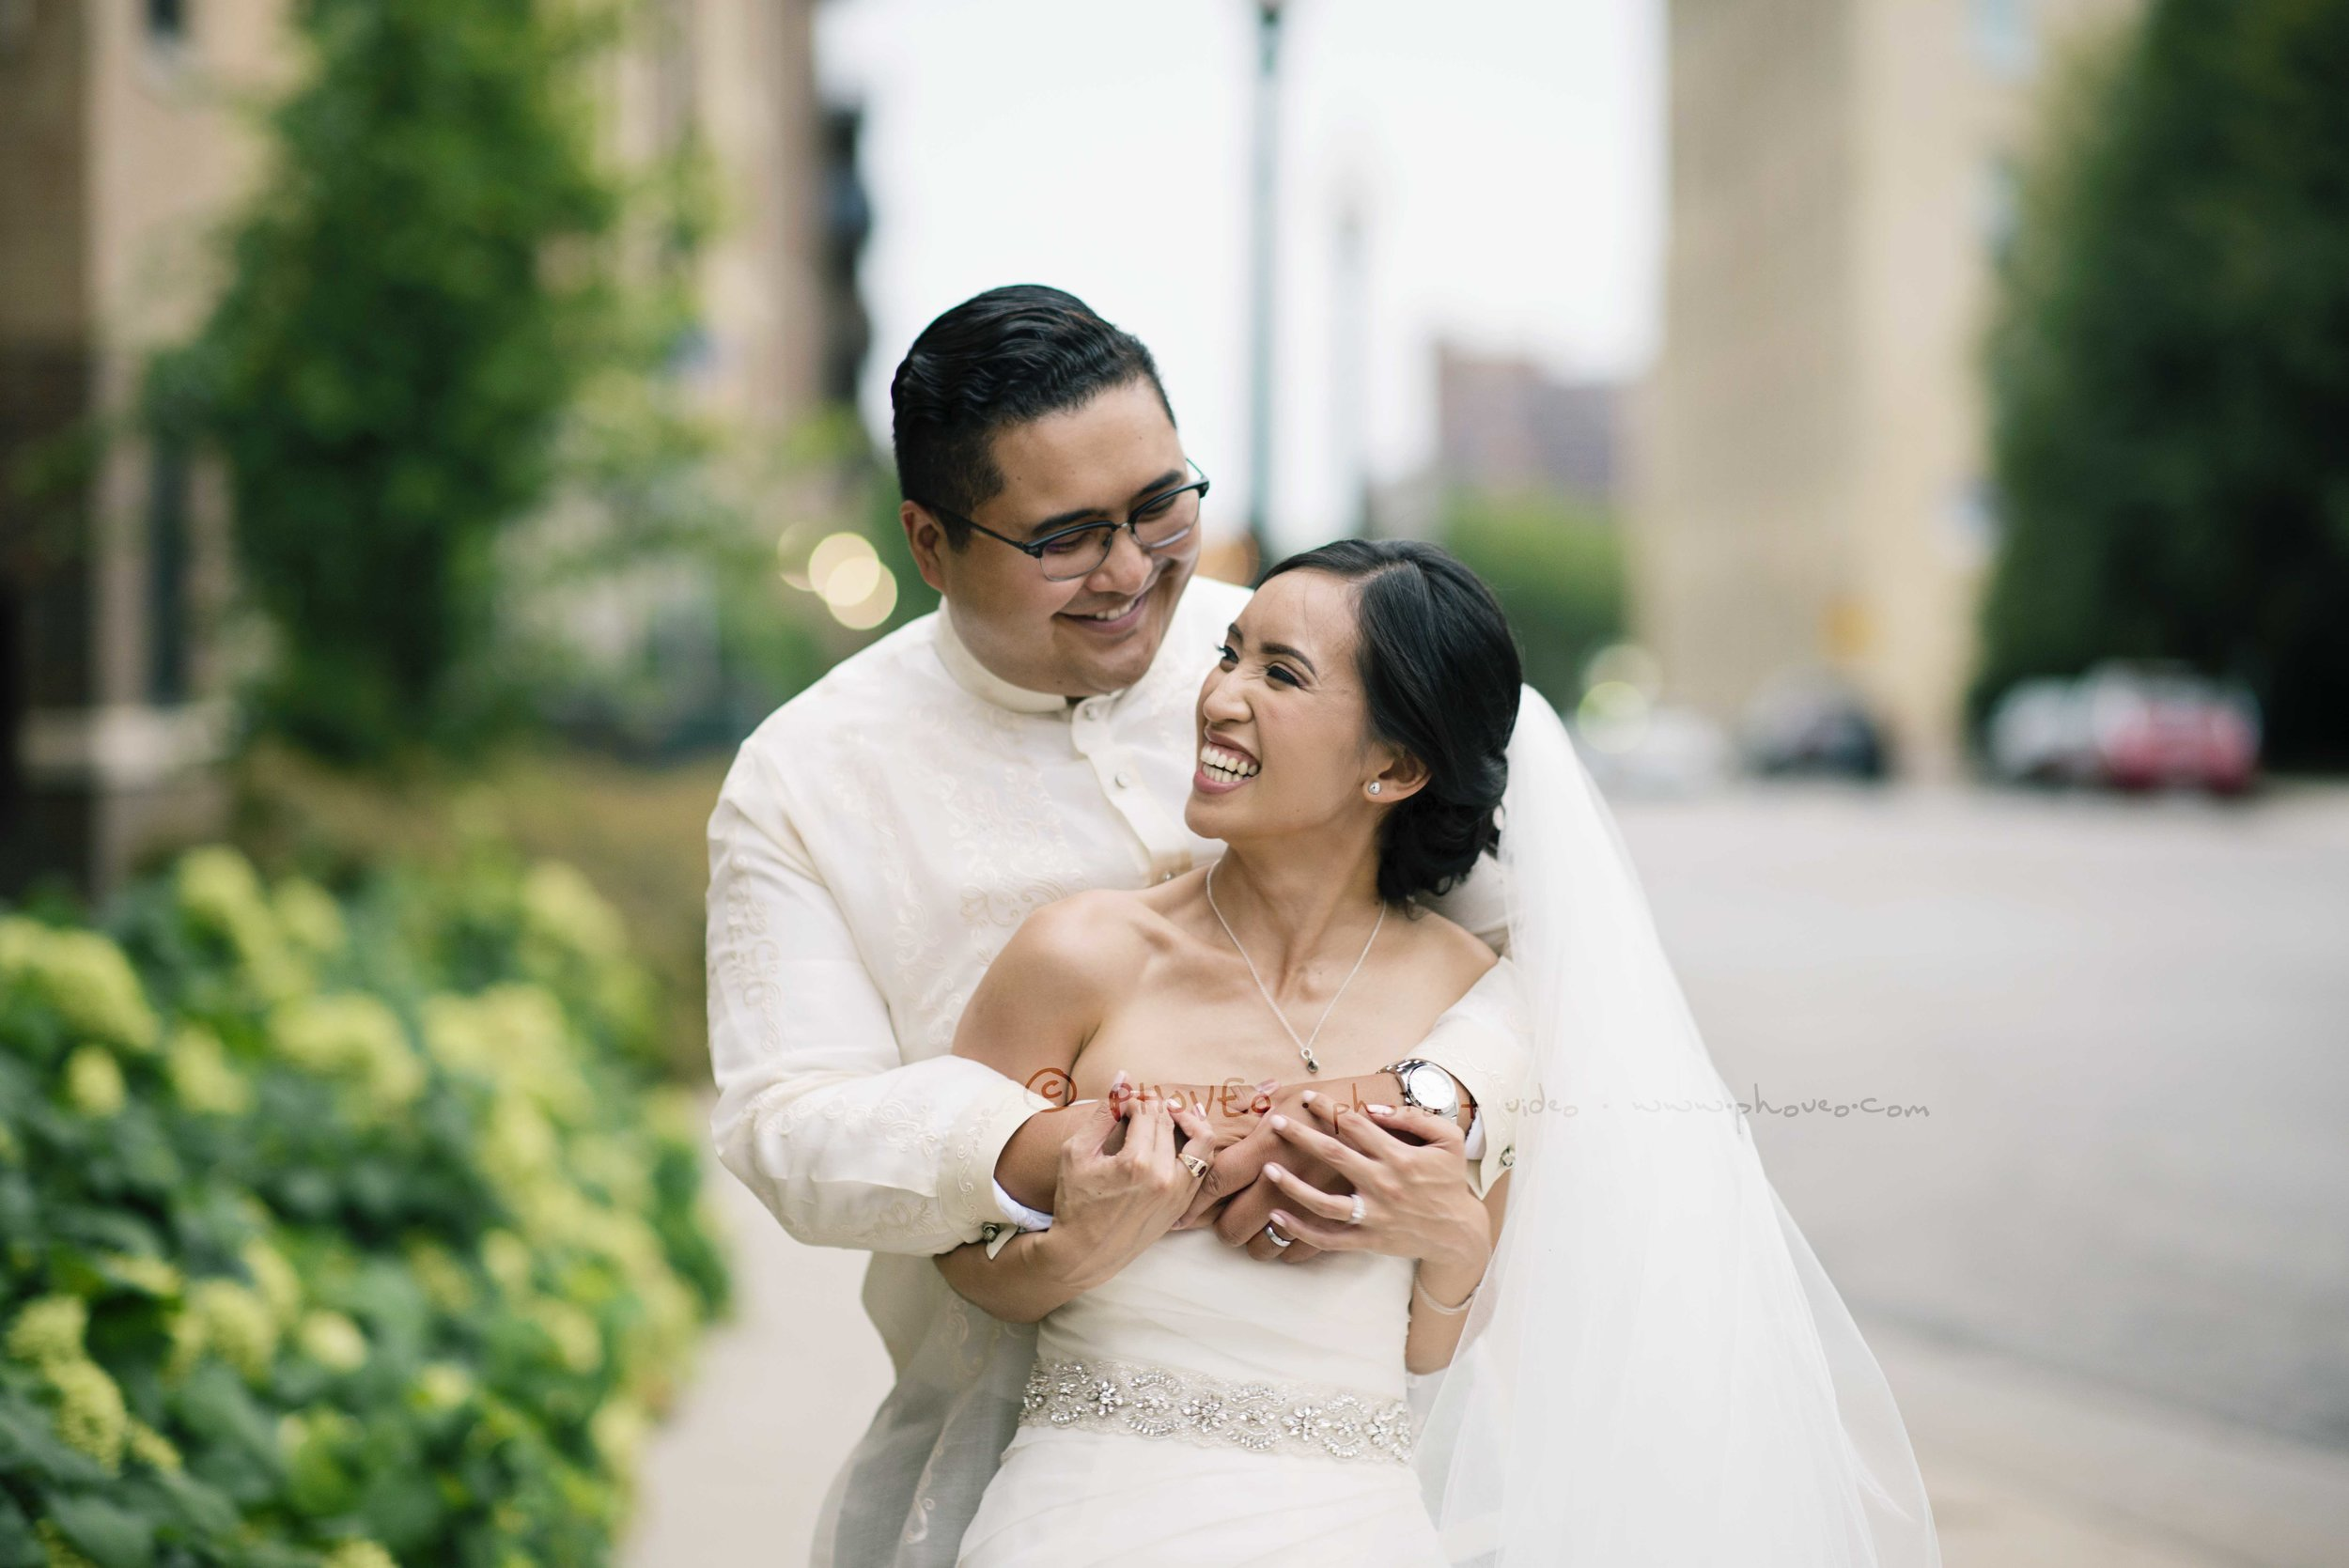 Nicole + Chris | Minneapolis, MN